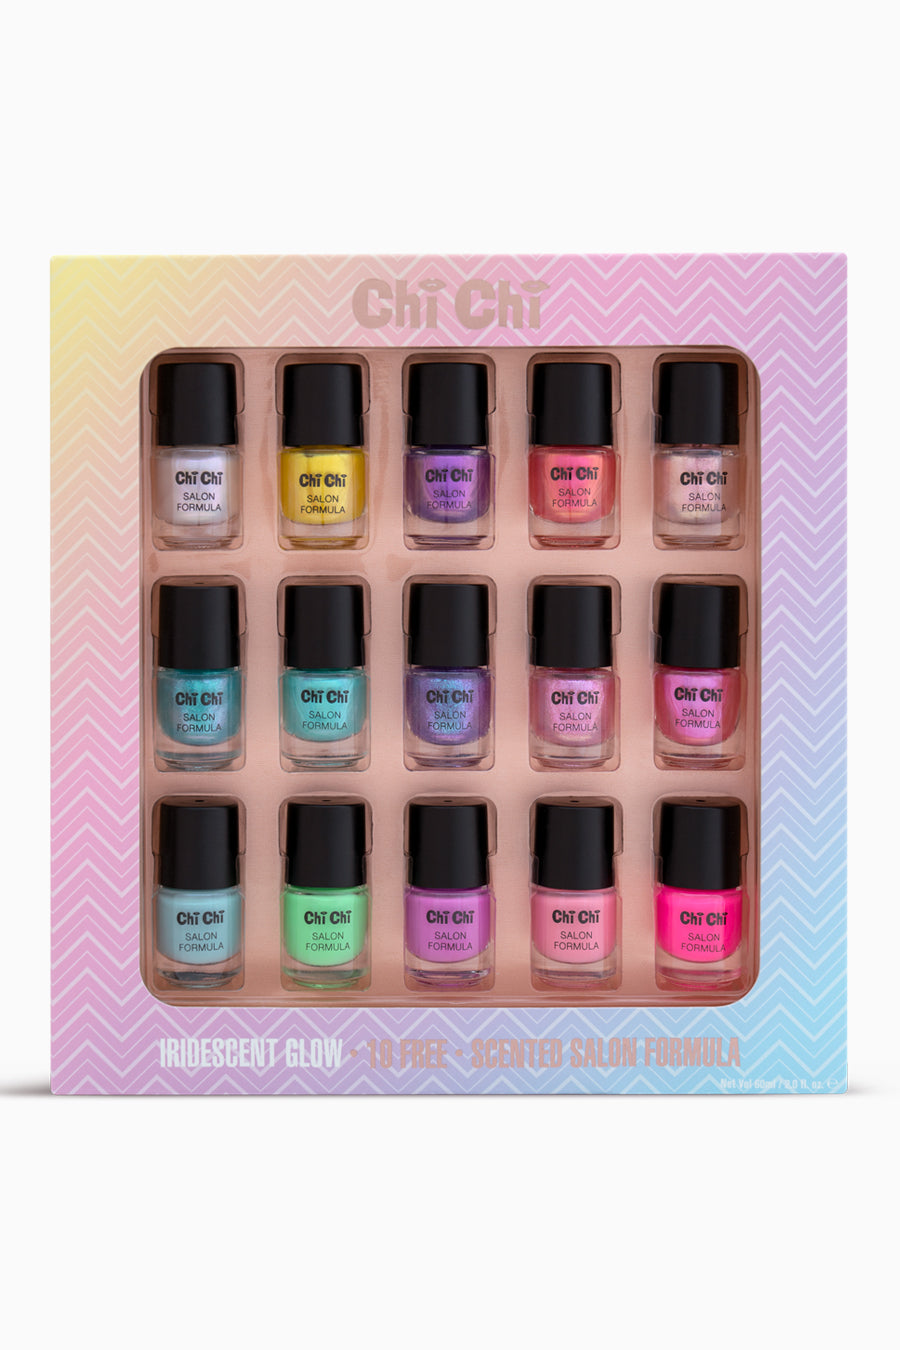 Iridescent Glow - Salon Formula Nail Set